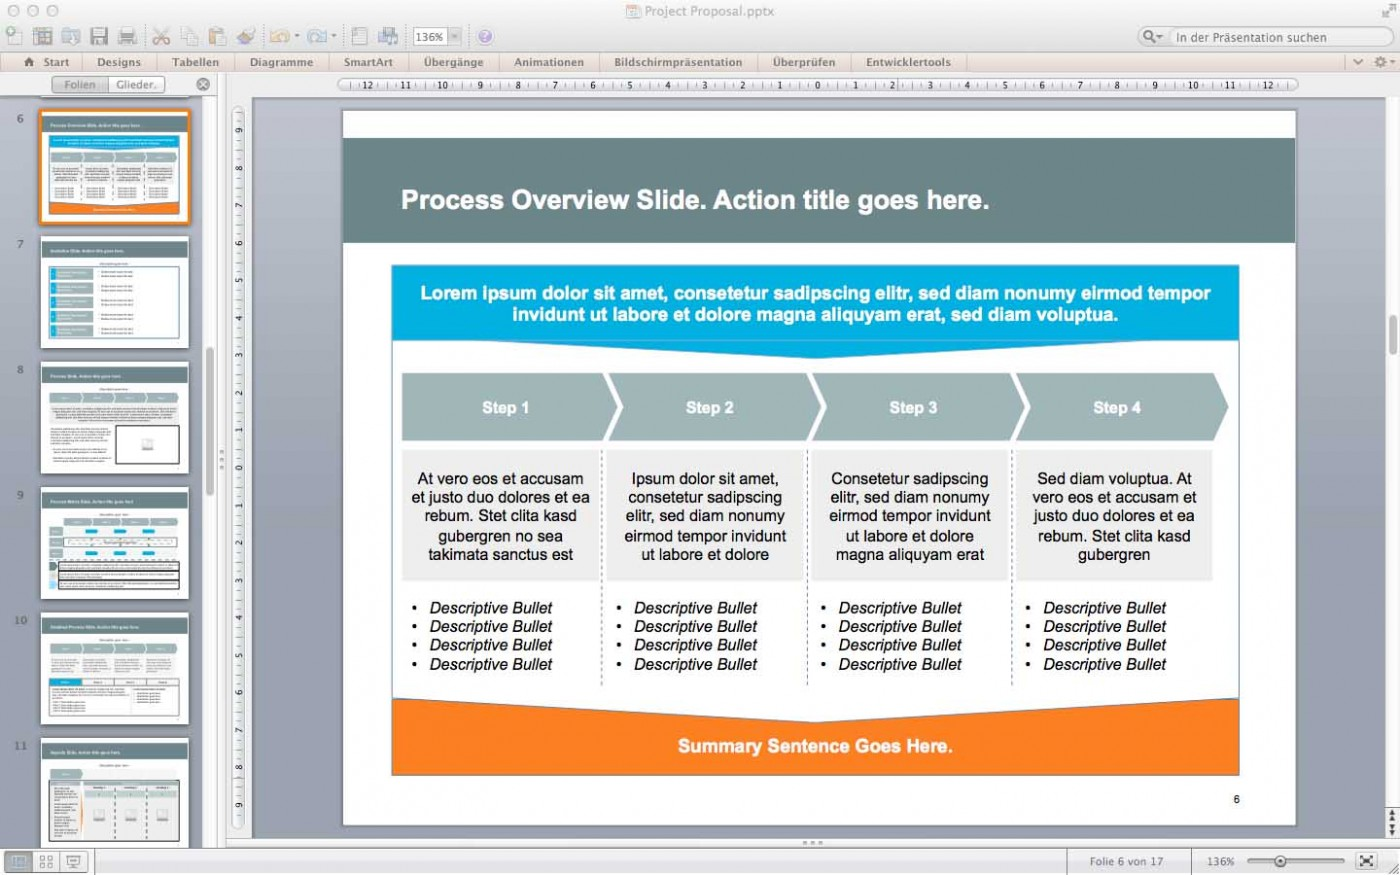 007 Powerpoint Presentation Format For Research Paper Project Proposal Template Templates Pro Mac Unique Sample Ppt 1400